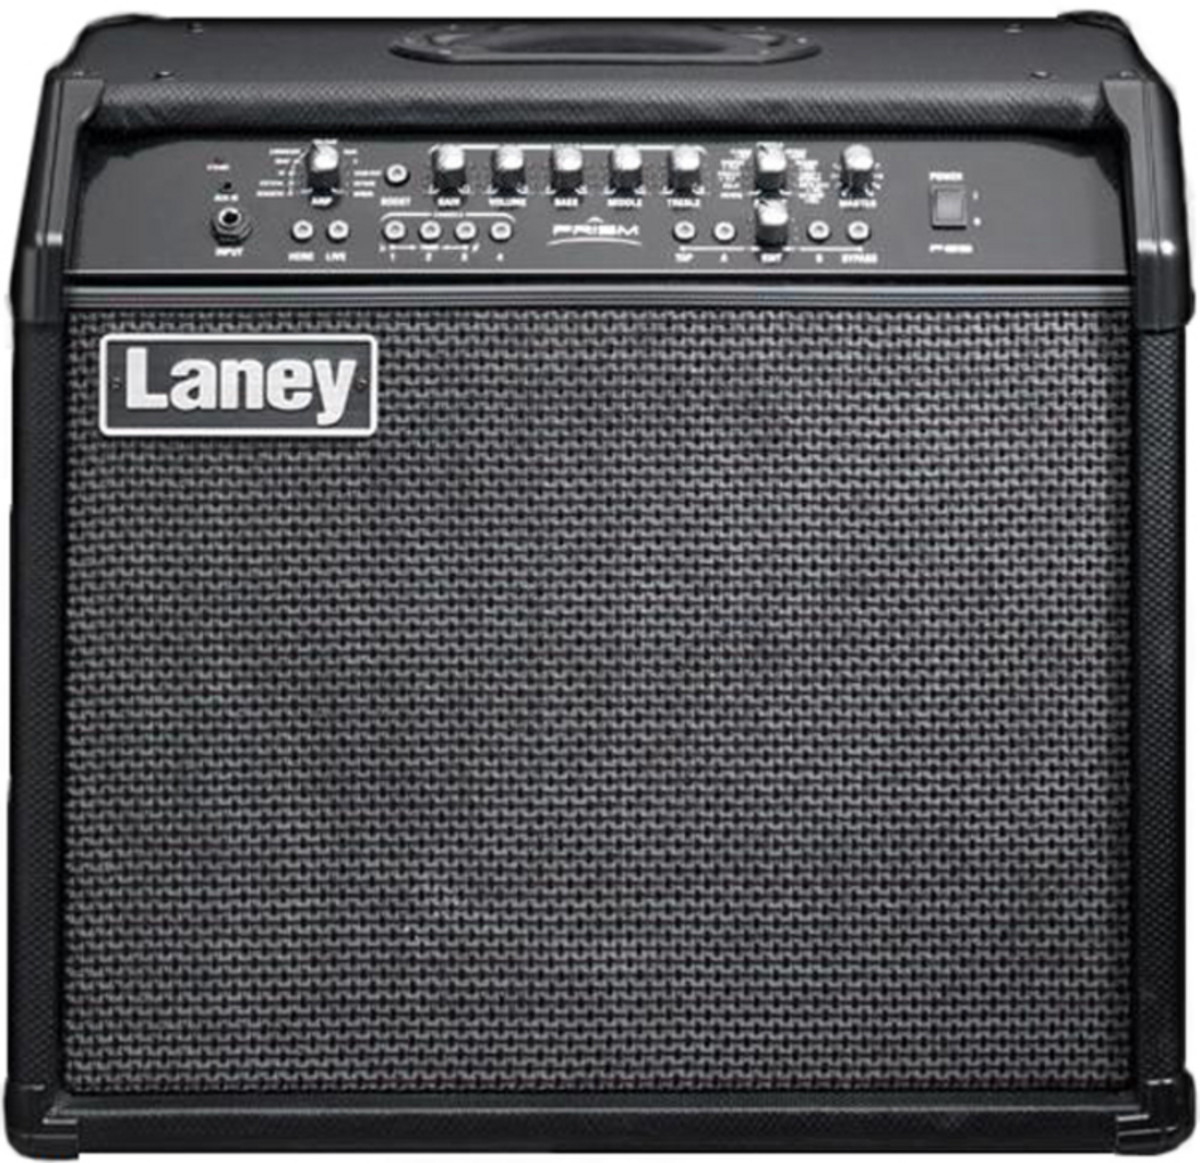 DISC Laney PRISM P65 Combo Guitar Amp at Gear4music